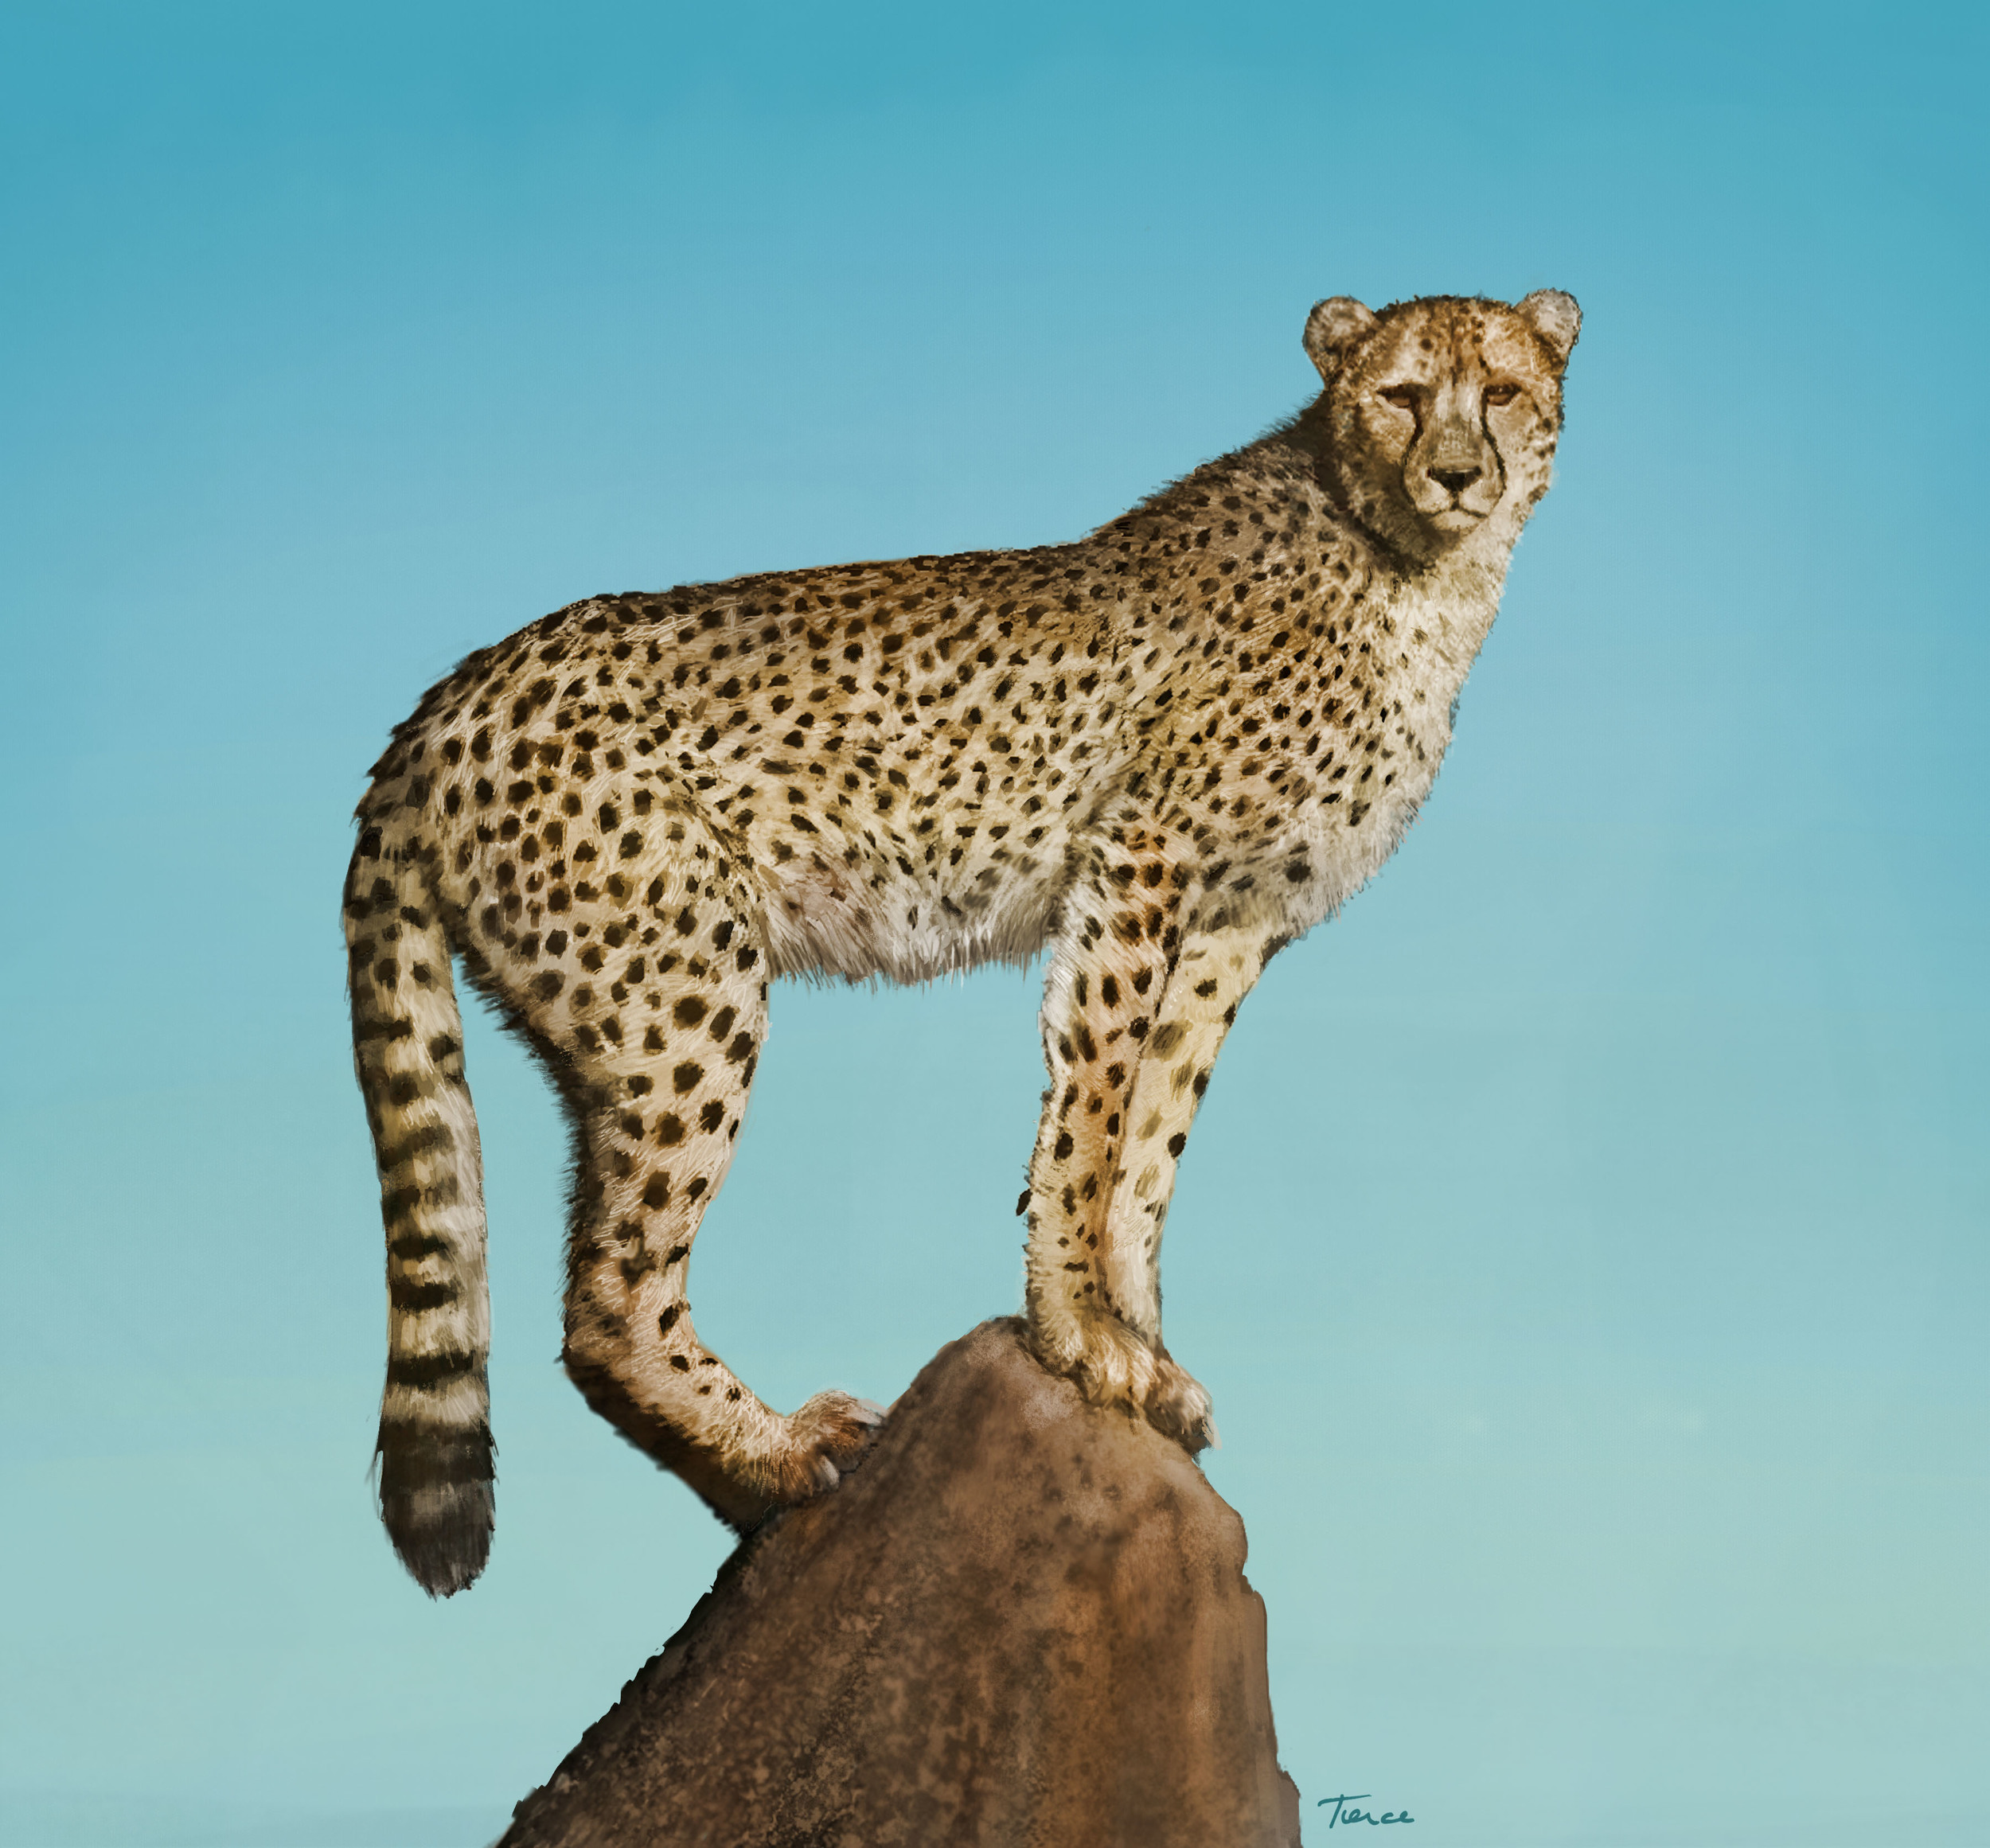 """A Cheetah for Maks"" by Nathalie Tierce"